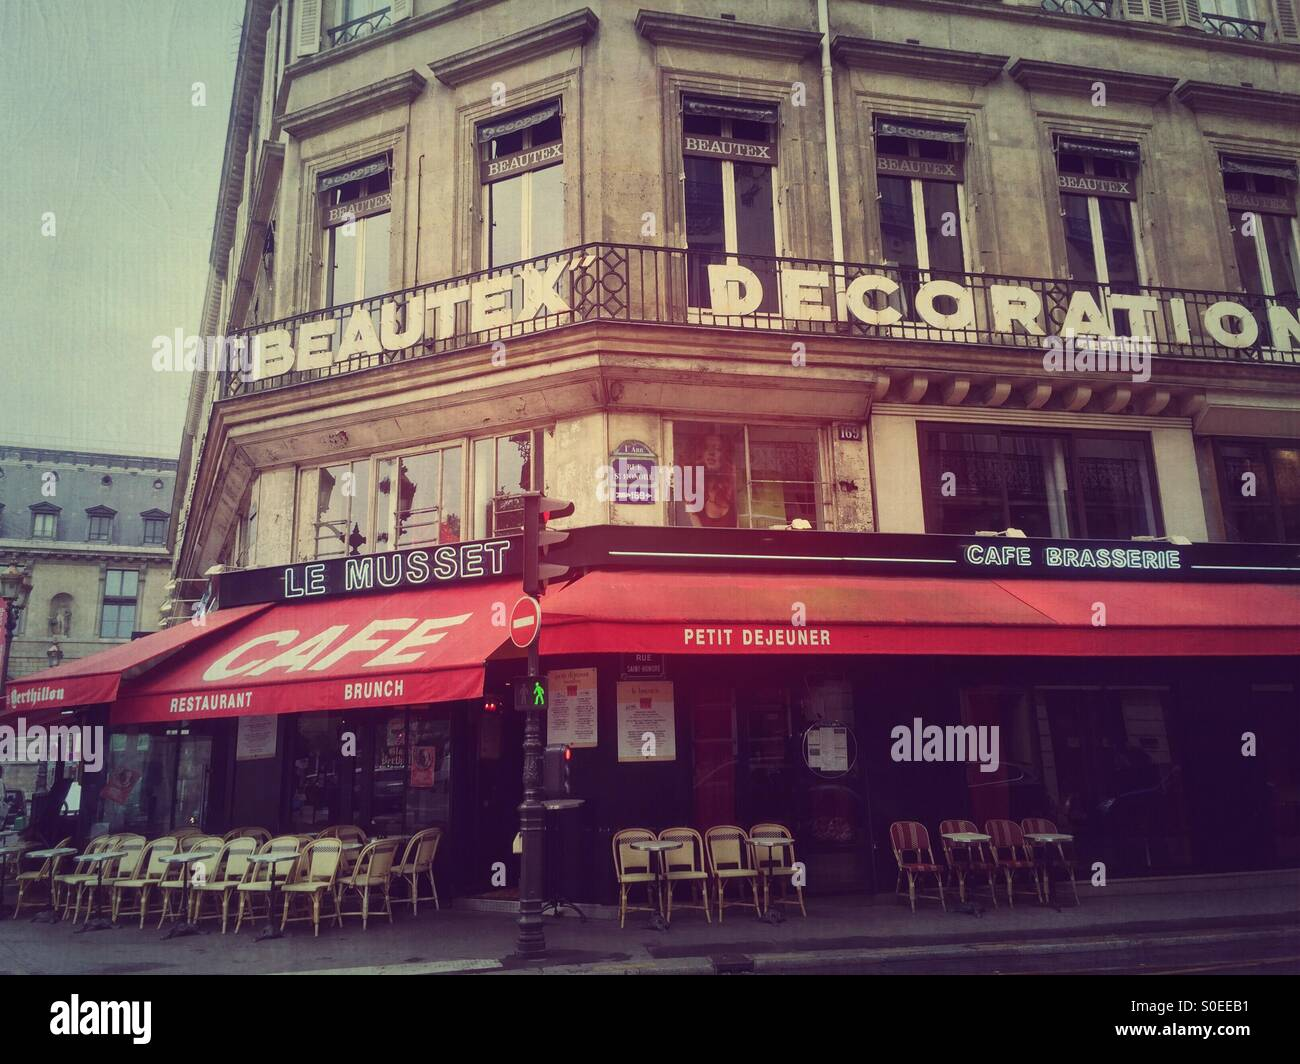 Le Musset cafe and brasserie on 1st arrondissement or district in central Paris, France. Vintage texture overlay.Stock Photo